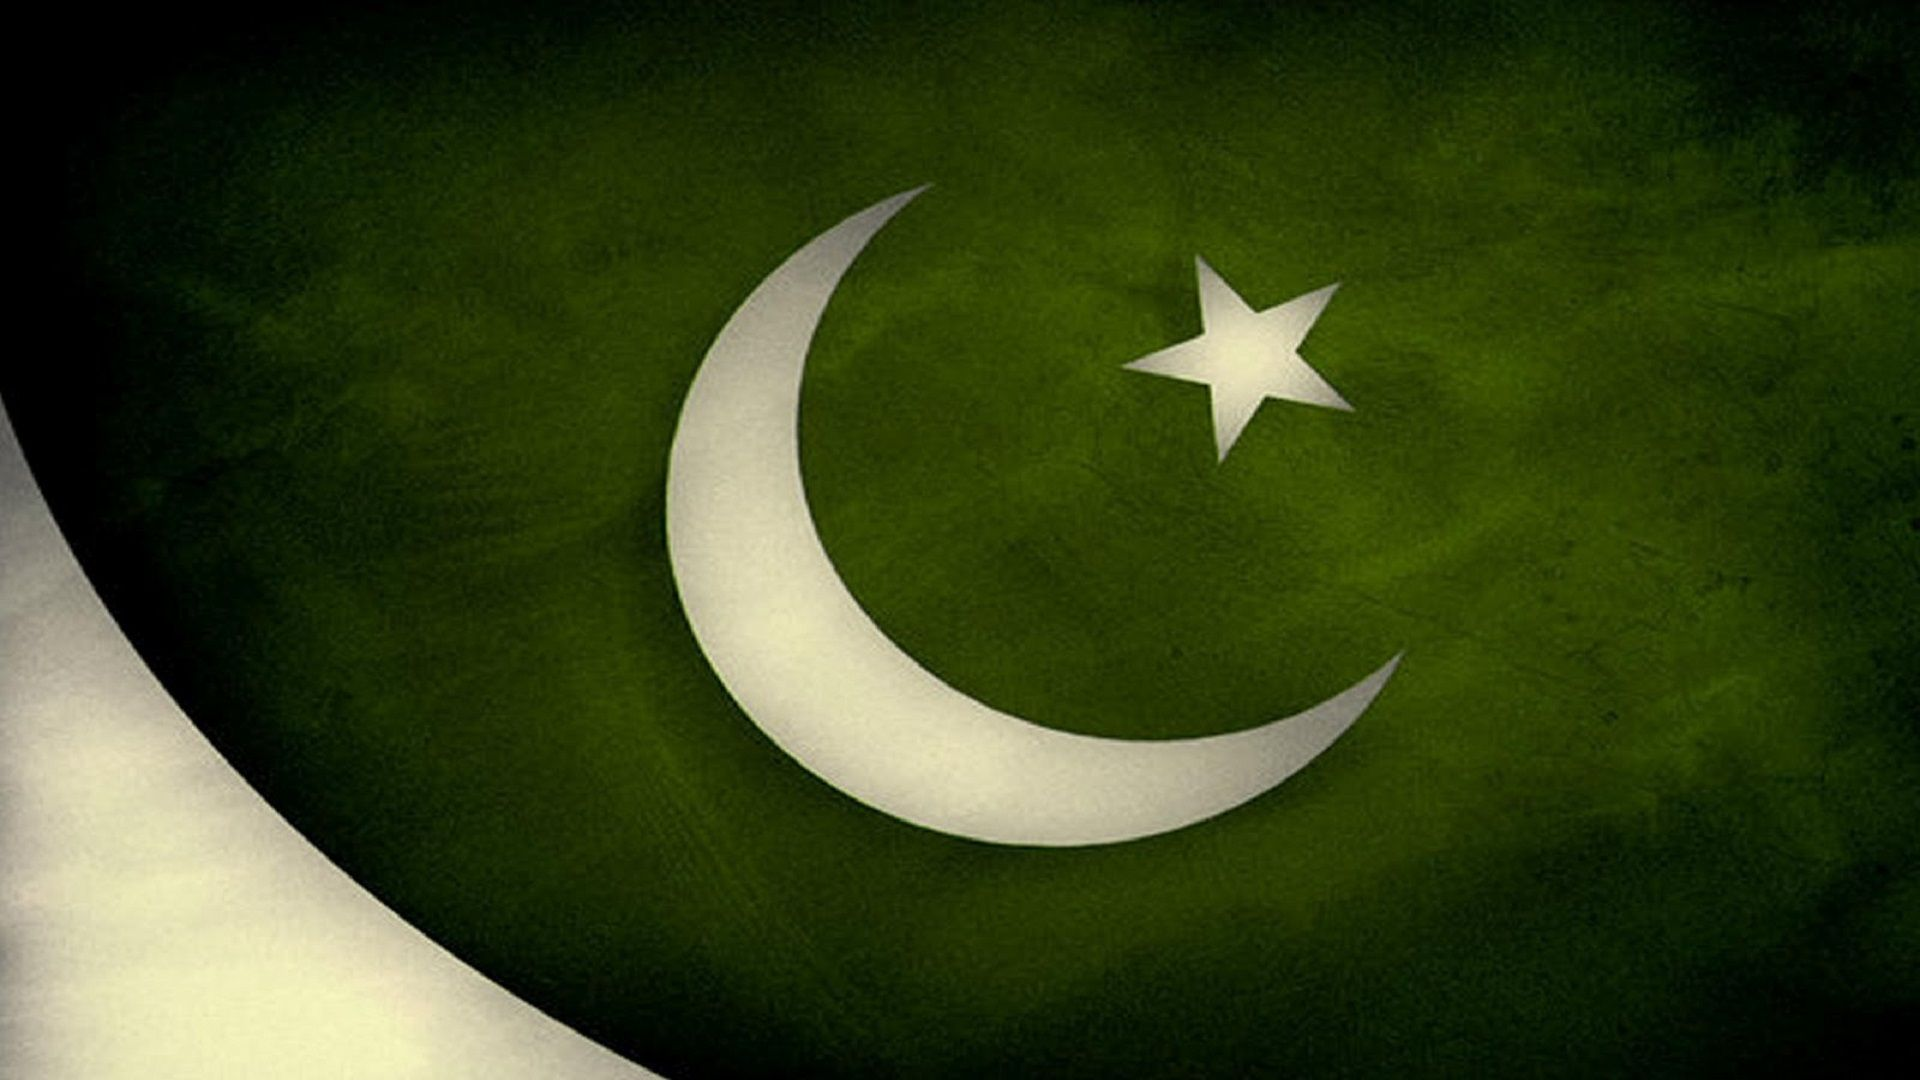 Pakistani Flag Hd Free Wallpapers For Desktop Pakistani Flag Pakistan Wallpaper Pakistan Independence Day